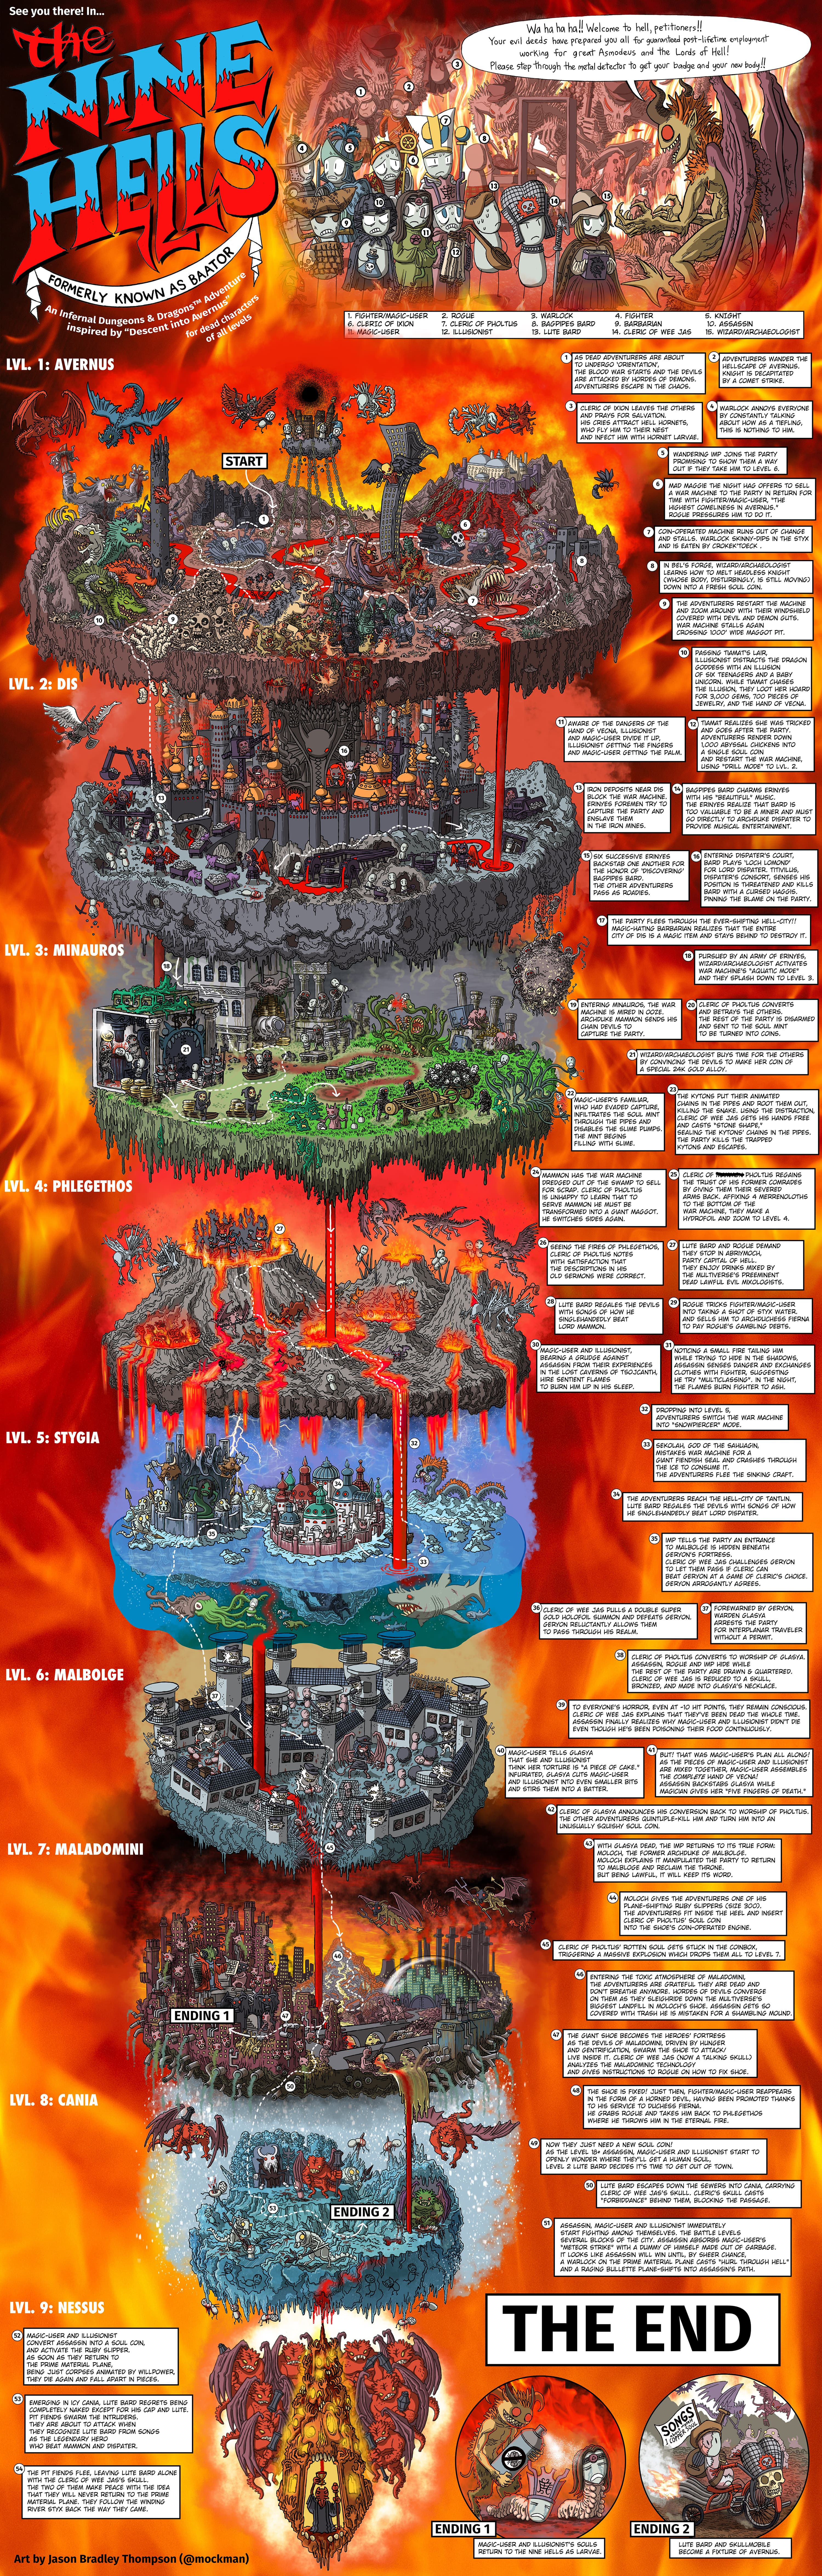 jason thompson nine hells map Una sagace Mappa dei Nove Inferi - by Jason Thompson Dragon+ #28 (2019-10) © Wizards of the Coast